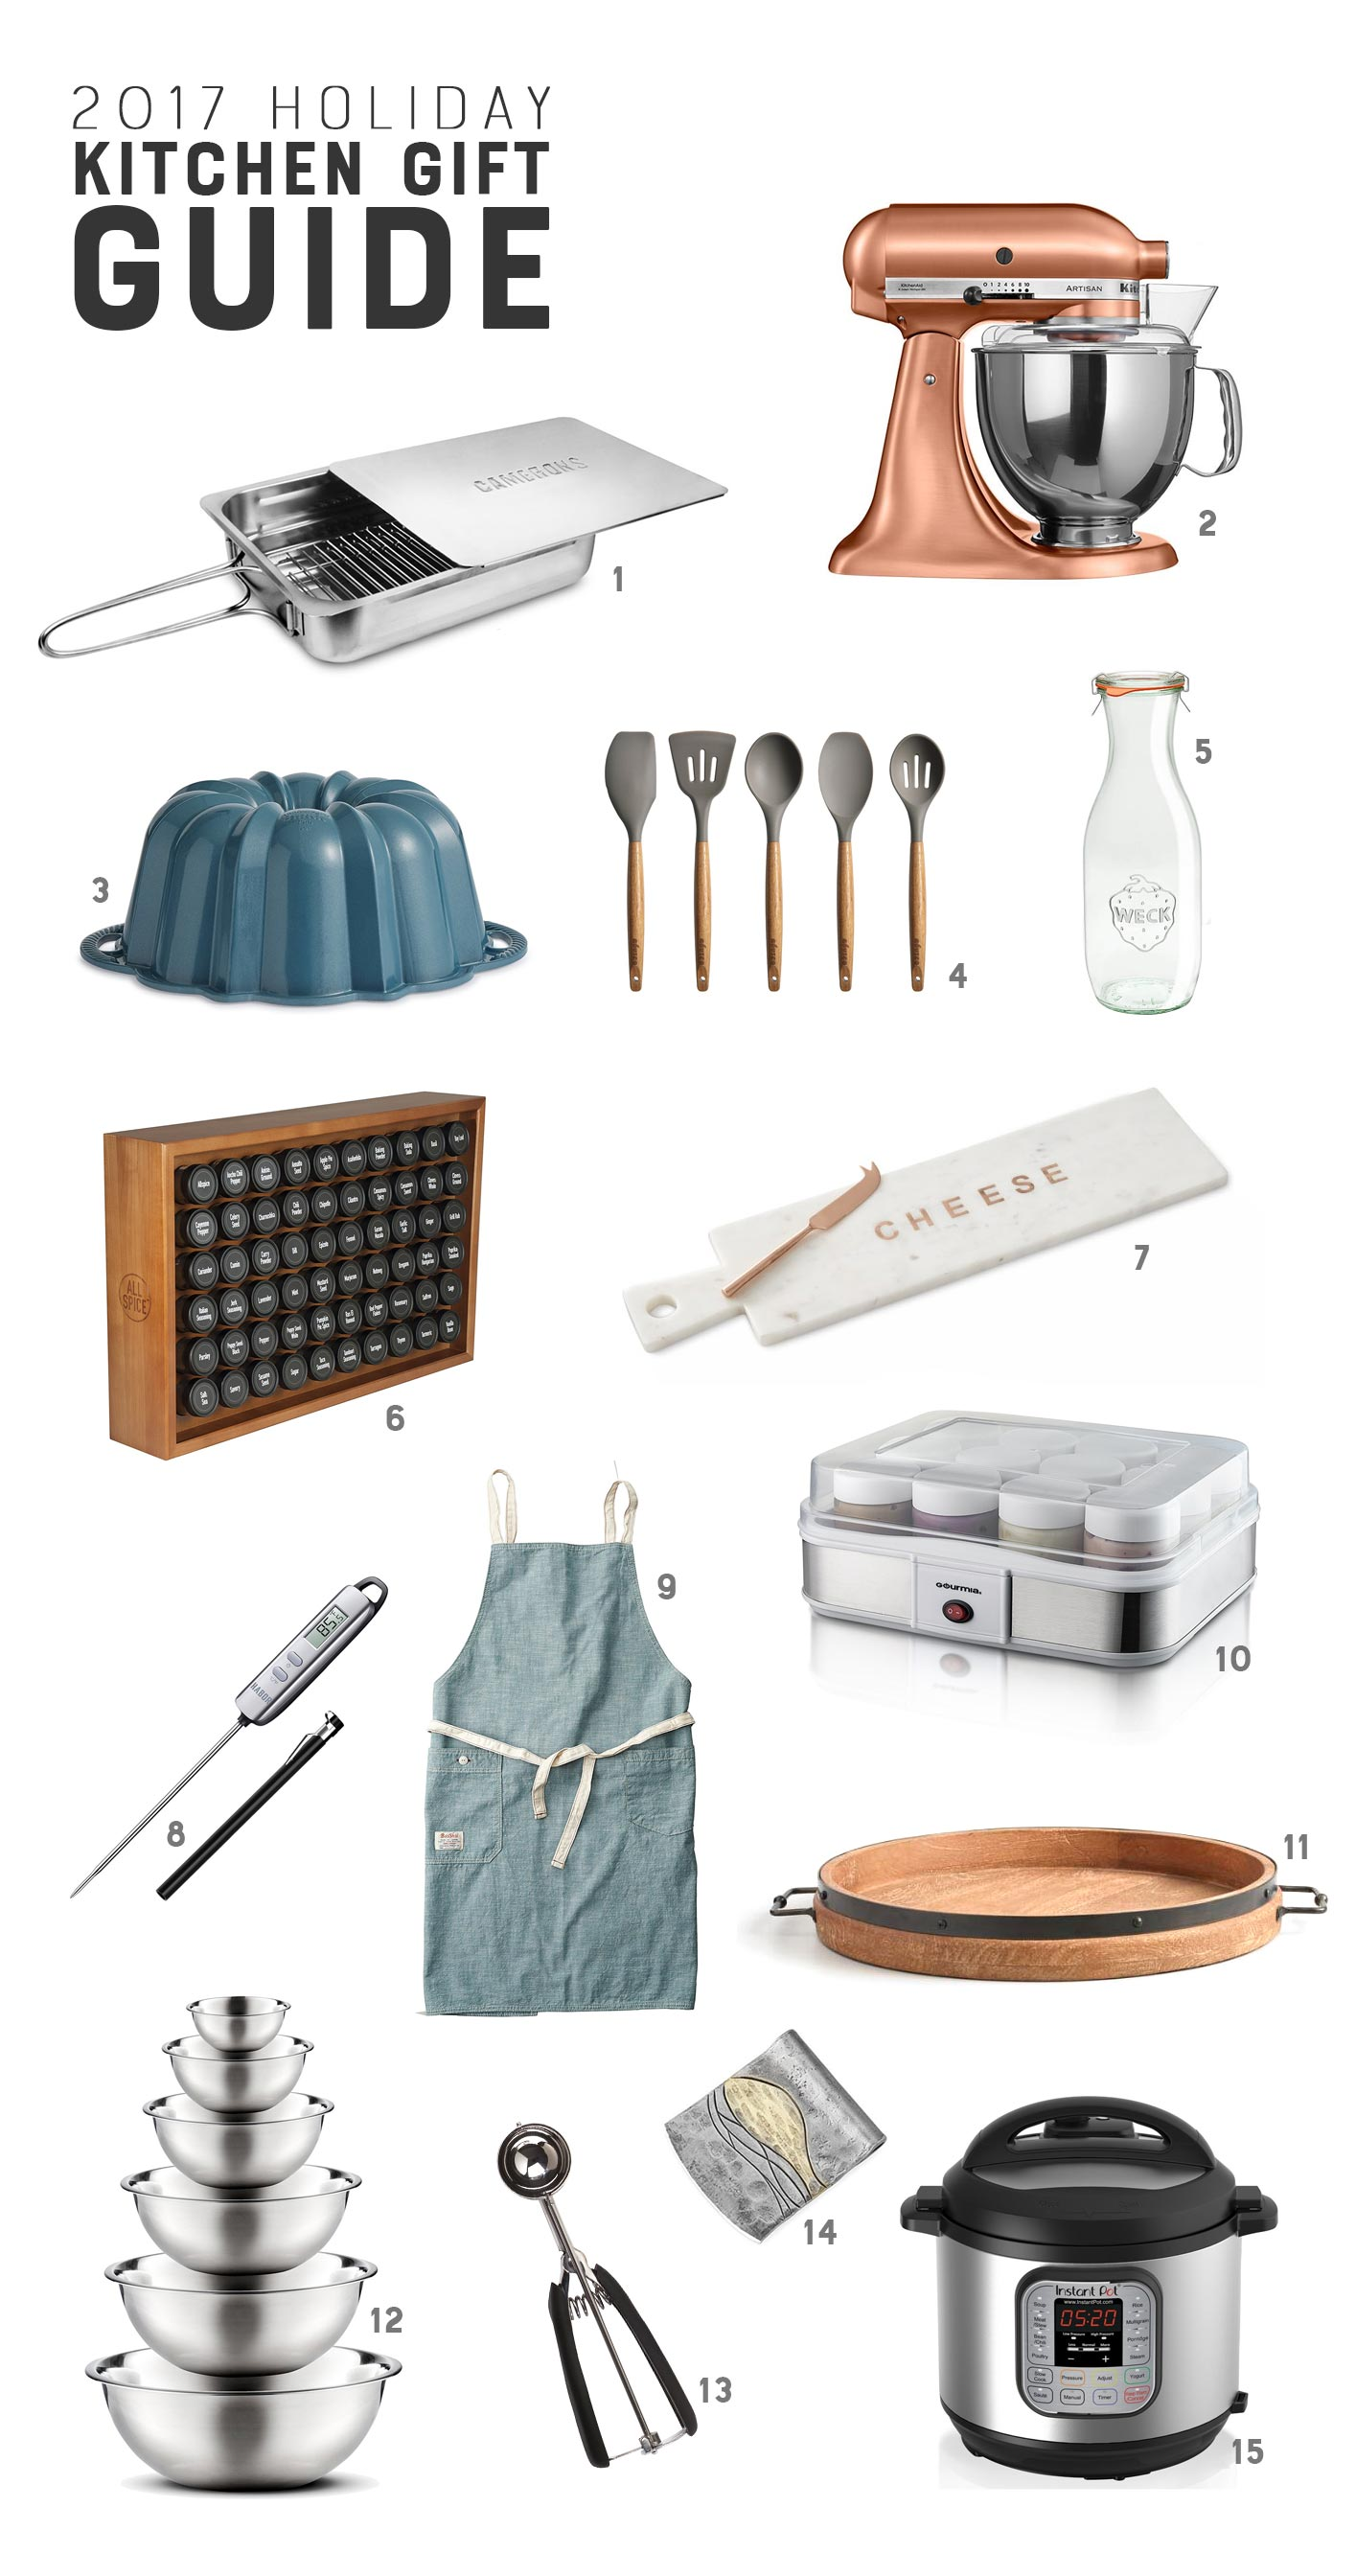 2017 Holiday Kitchen Gift Guide